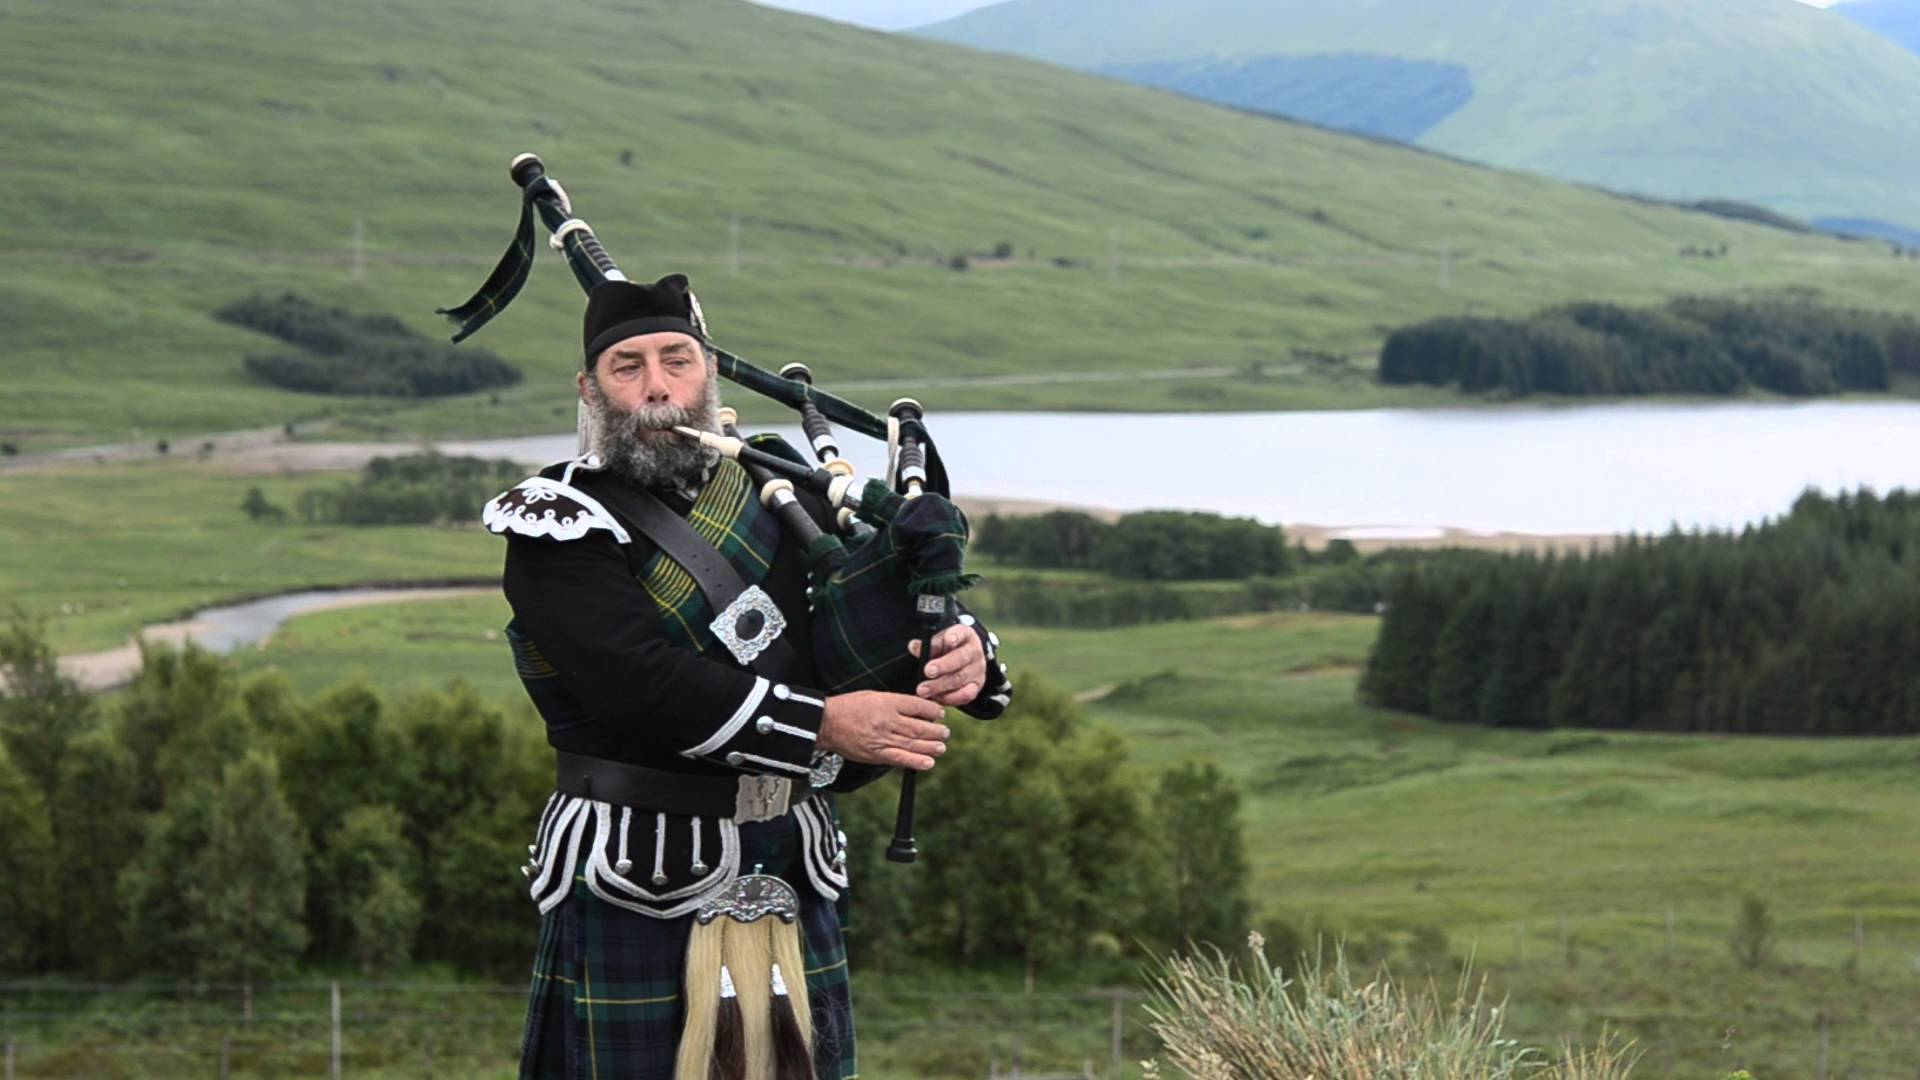 Scottish Bagpipe Player at Highlands - YouTube